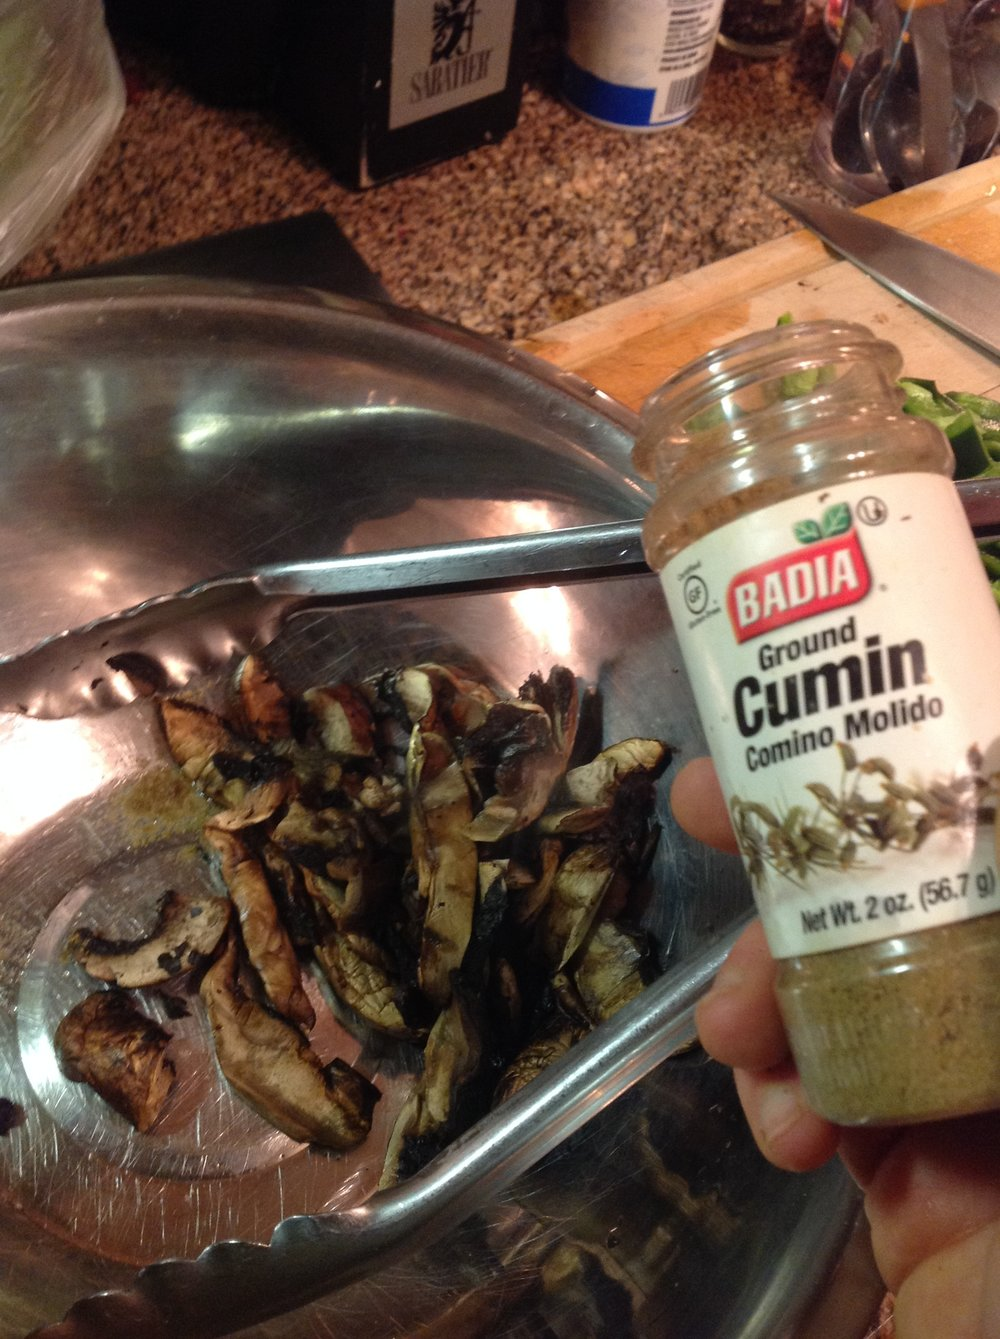 Chef's Tip - Sprinkle the grilled mushrooms with a cumin right after grilling.  The heat will create more intense, smoky flavor for this healthy vegan recipe